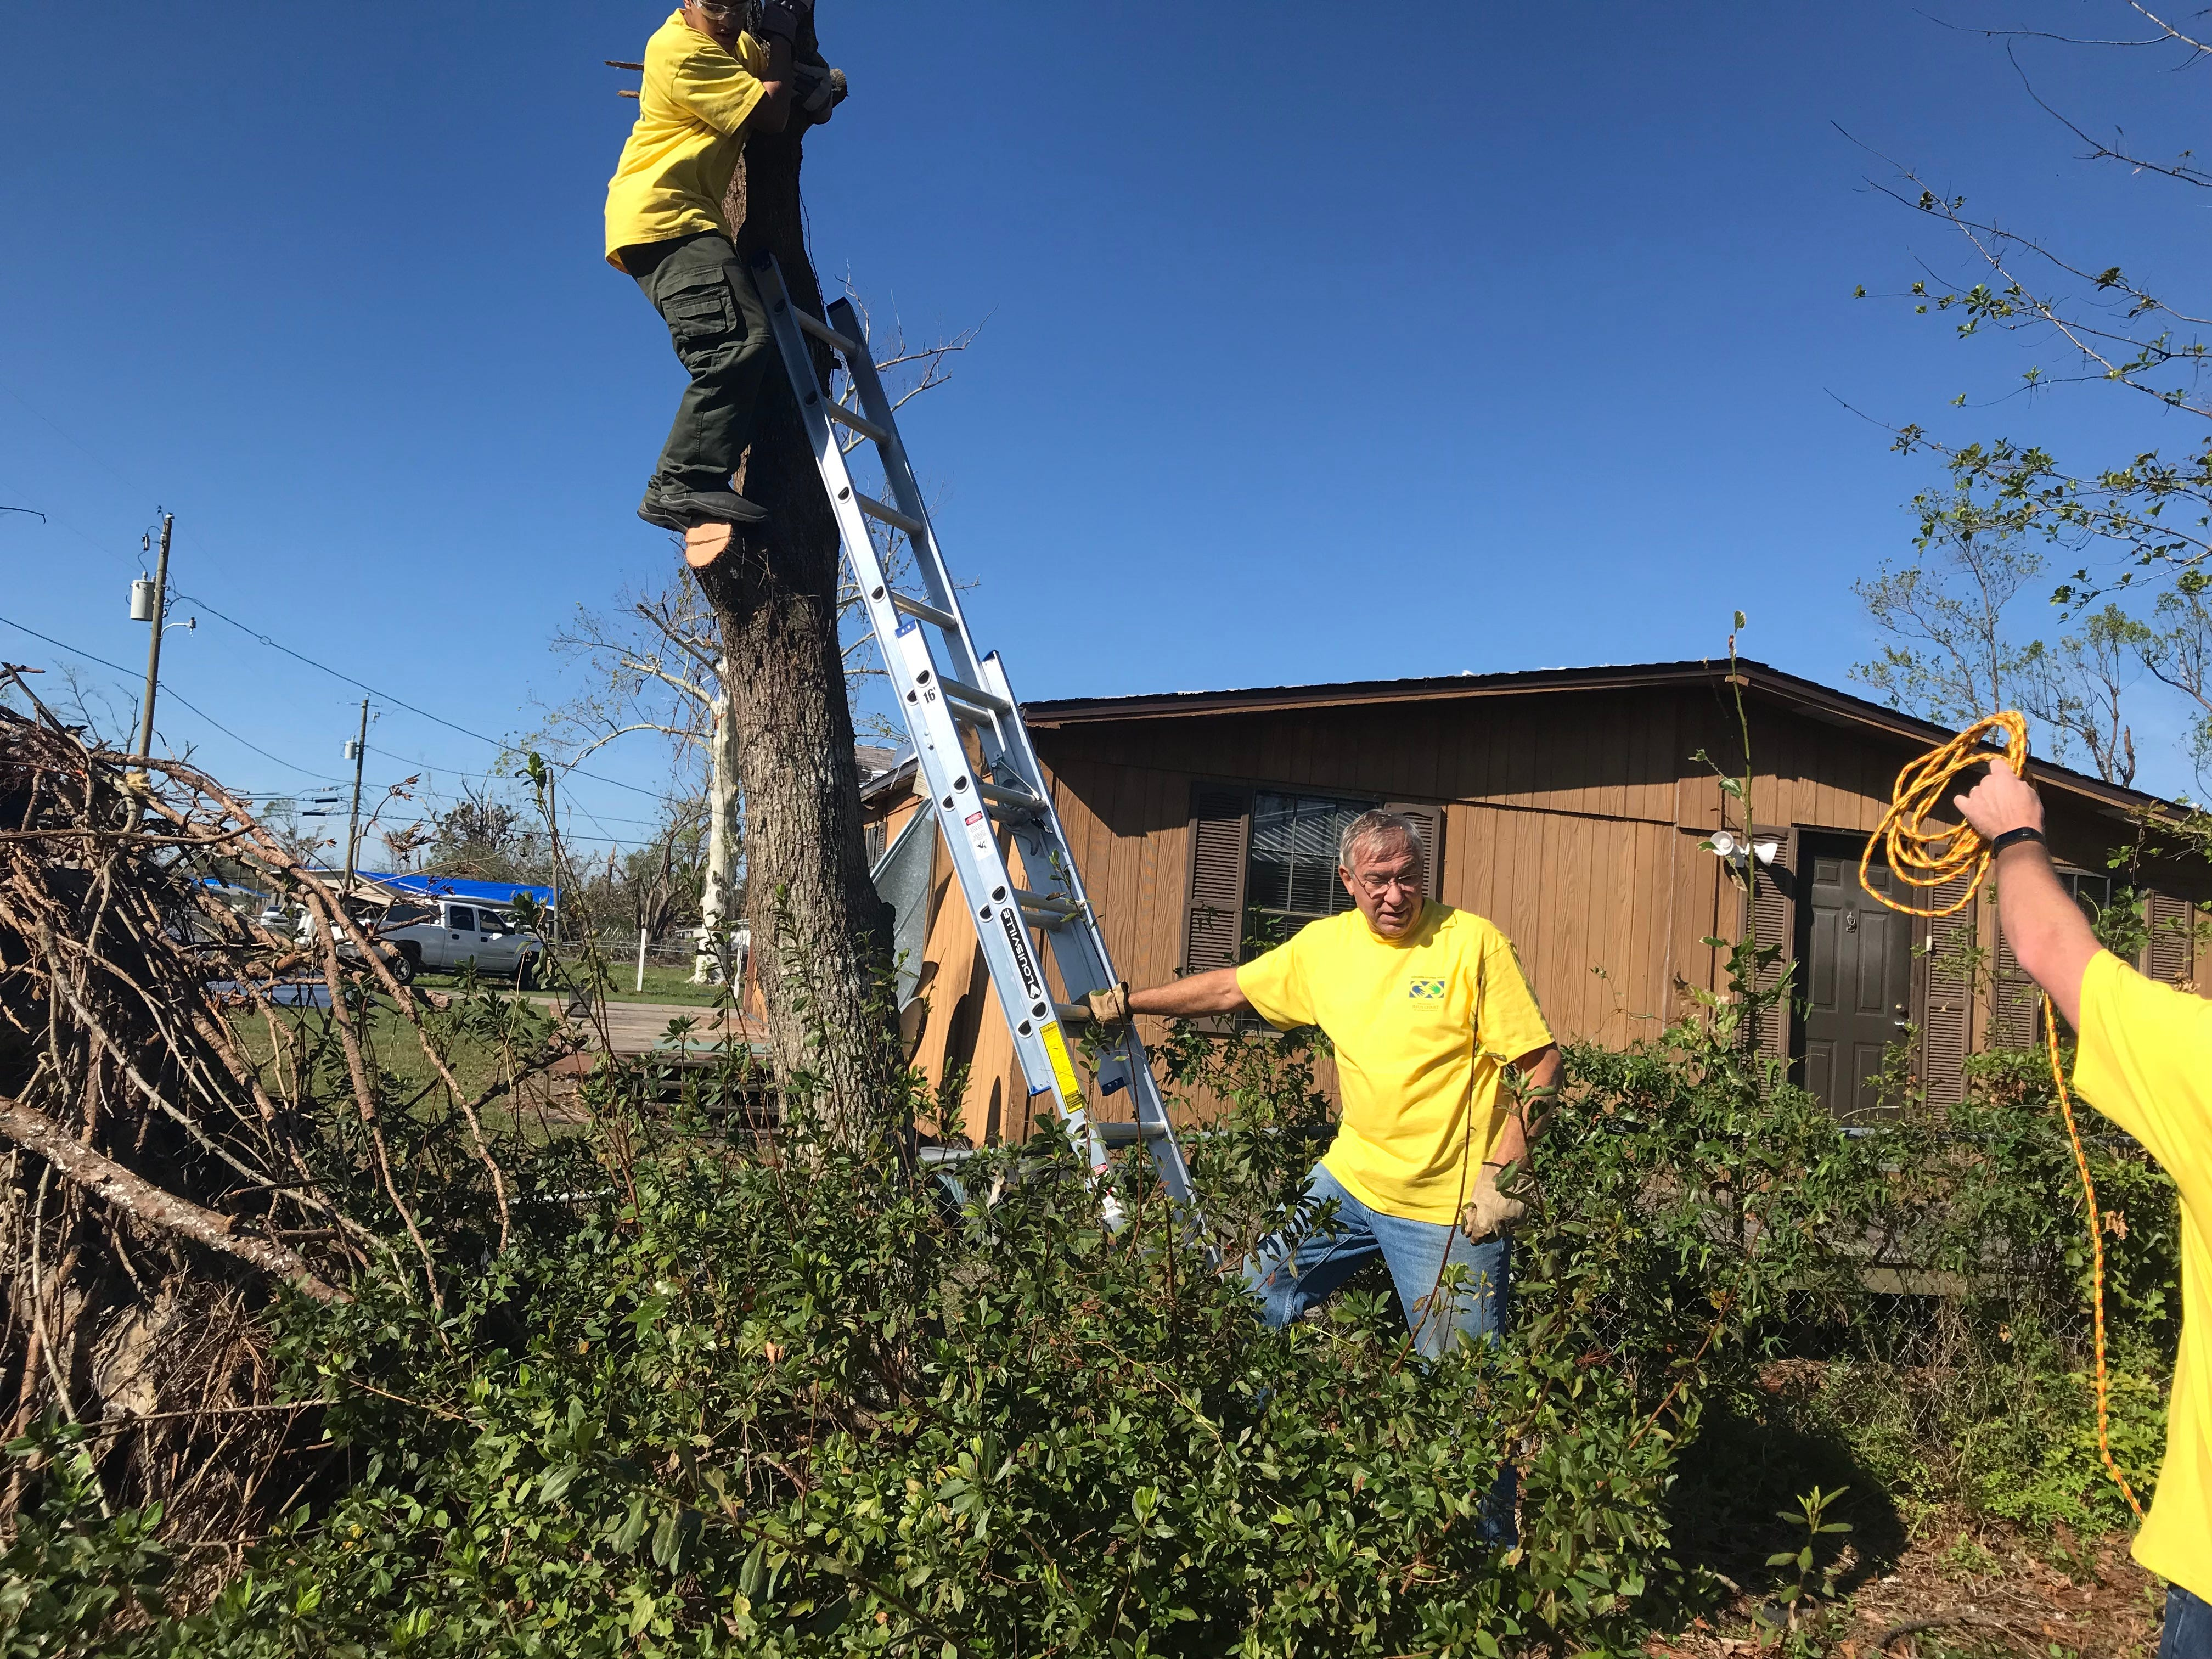 George Edge steadies the ladder as the team works to cut down a tree in Callaway, Florida.